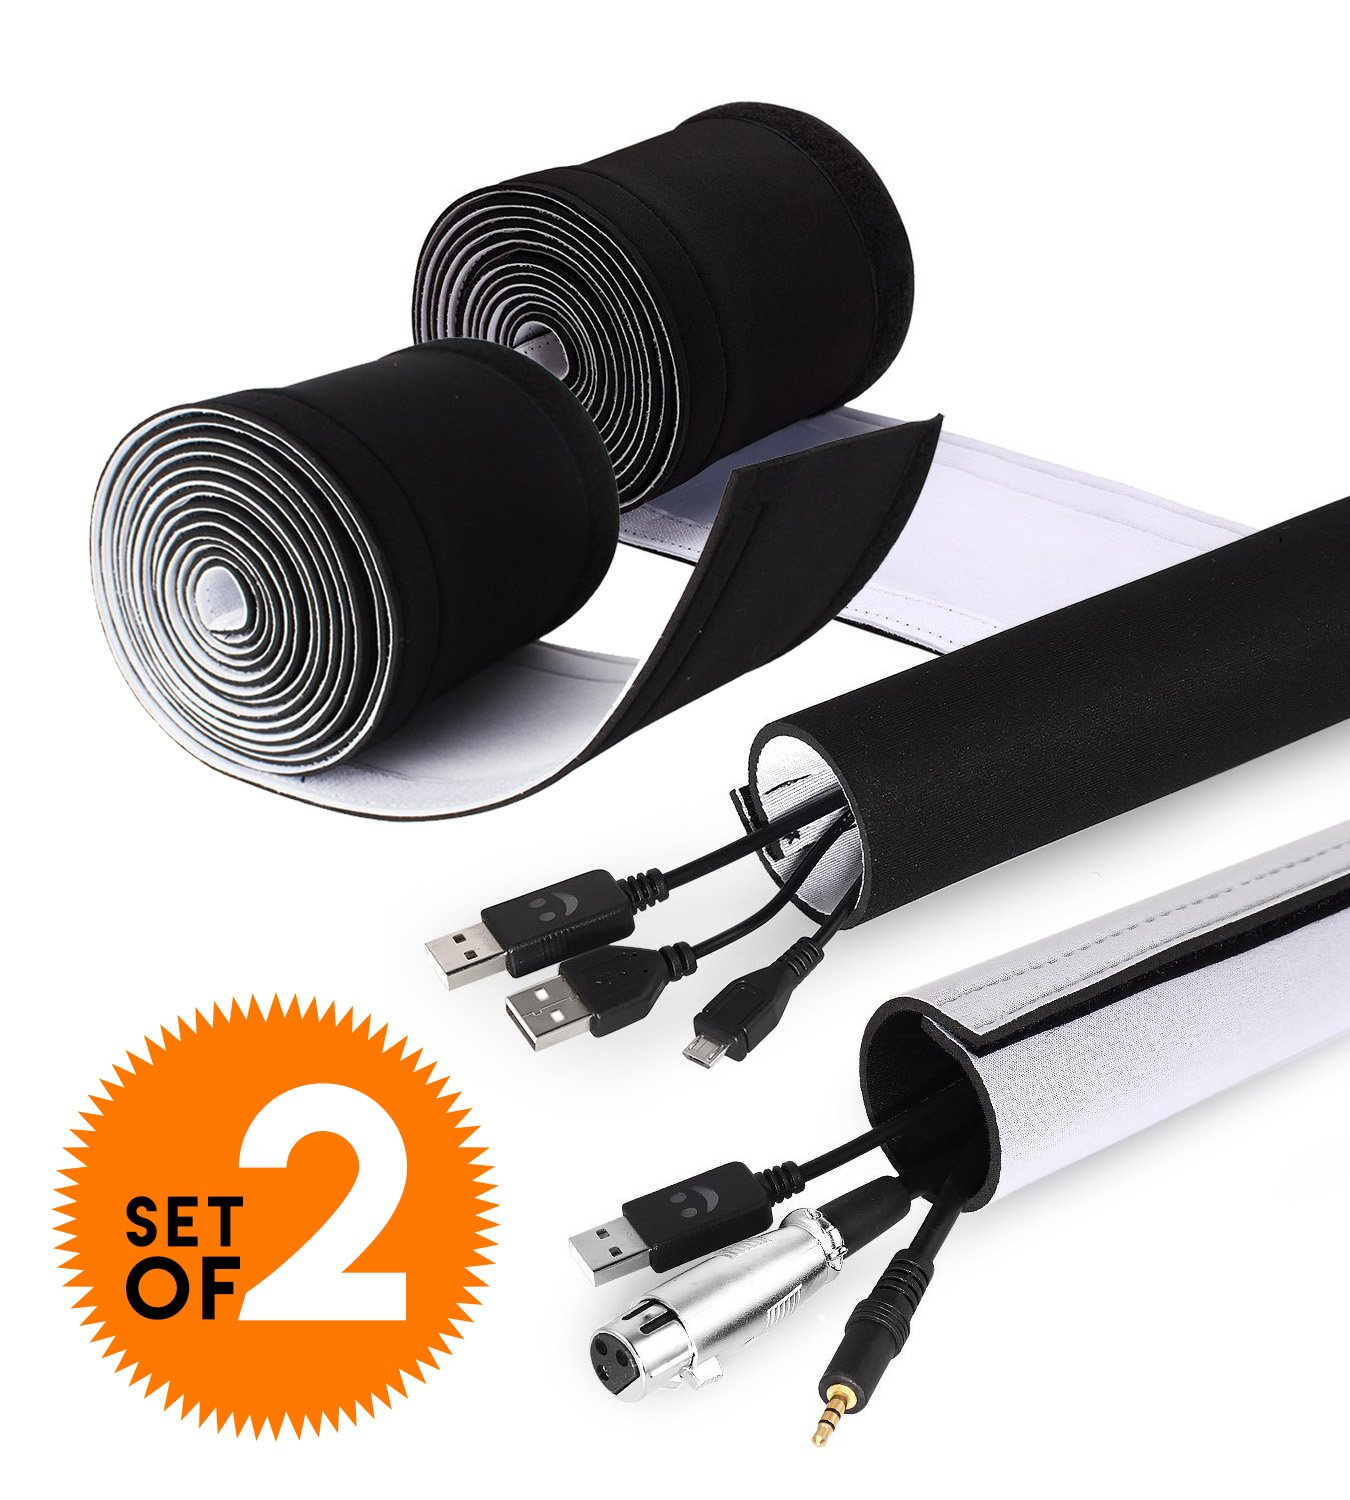 Adjustable Cable Organizer Sleeves (2 Pack x 35'') by Astorn. Reversible Black & White Neoprene Cord Organizer Sleeve Wraps. Cord Protector from Pets, Hiding Wires by Astorn (Image #1)